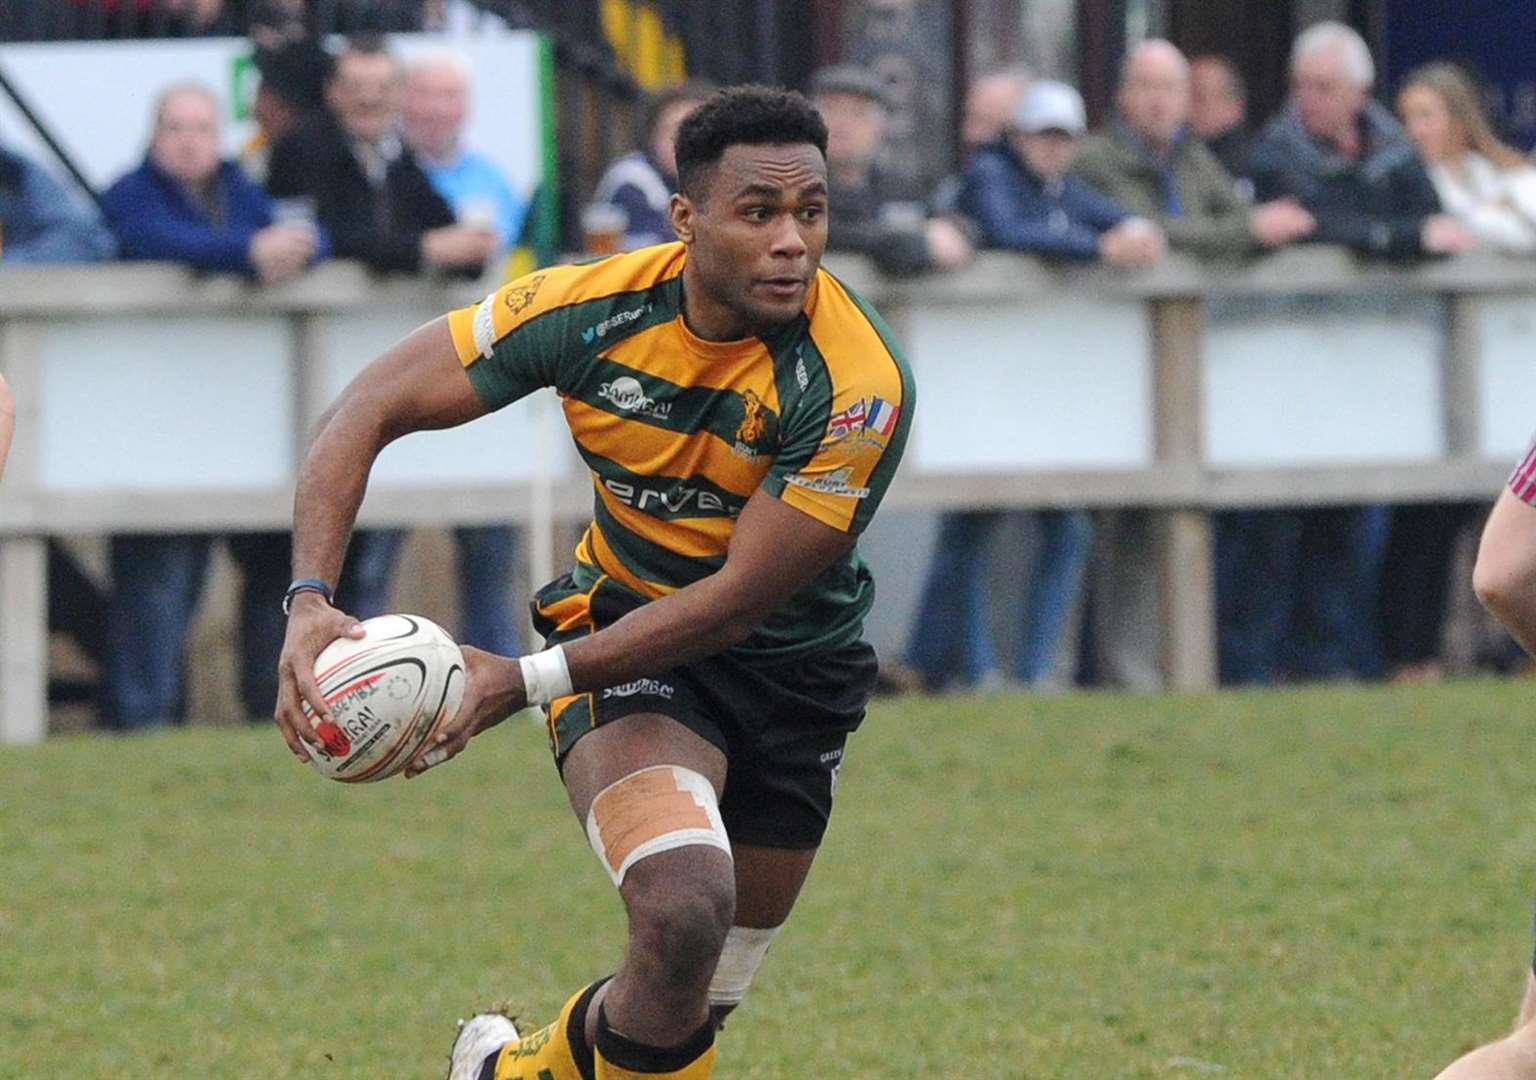 Premiership club comes calling for Bury Rugby Club's Tui Uru